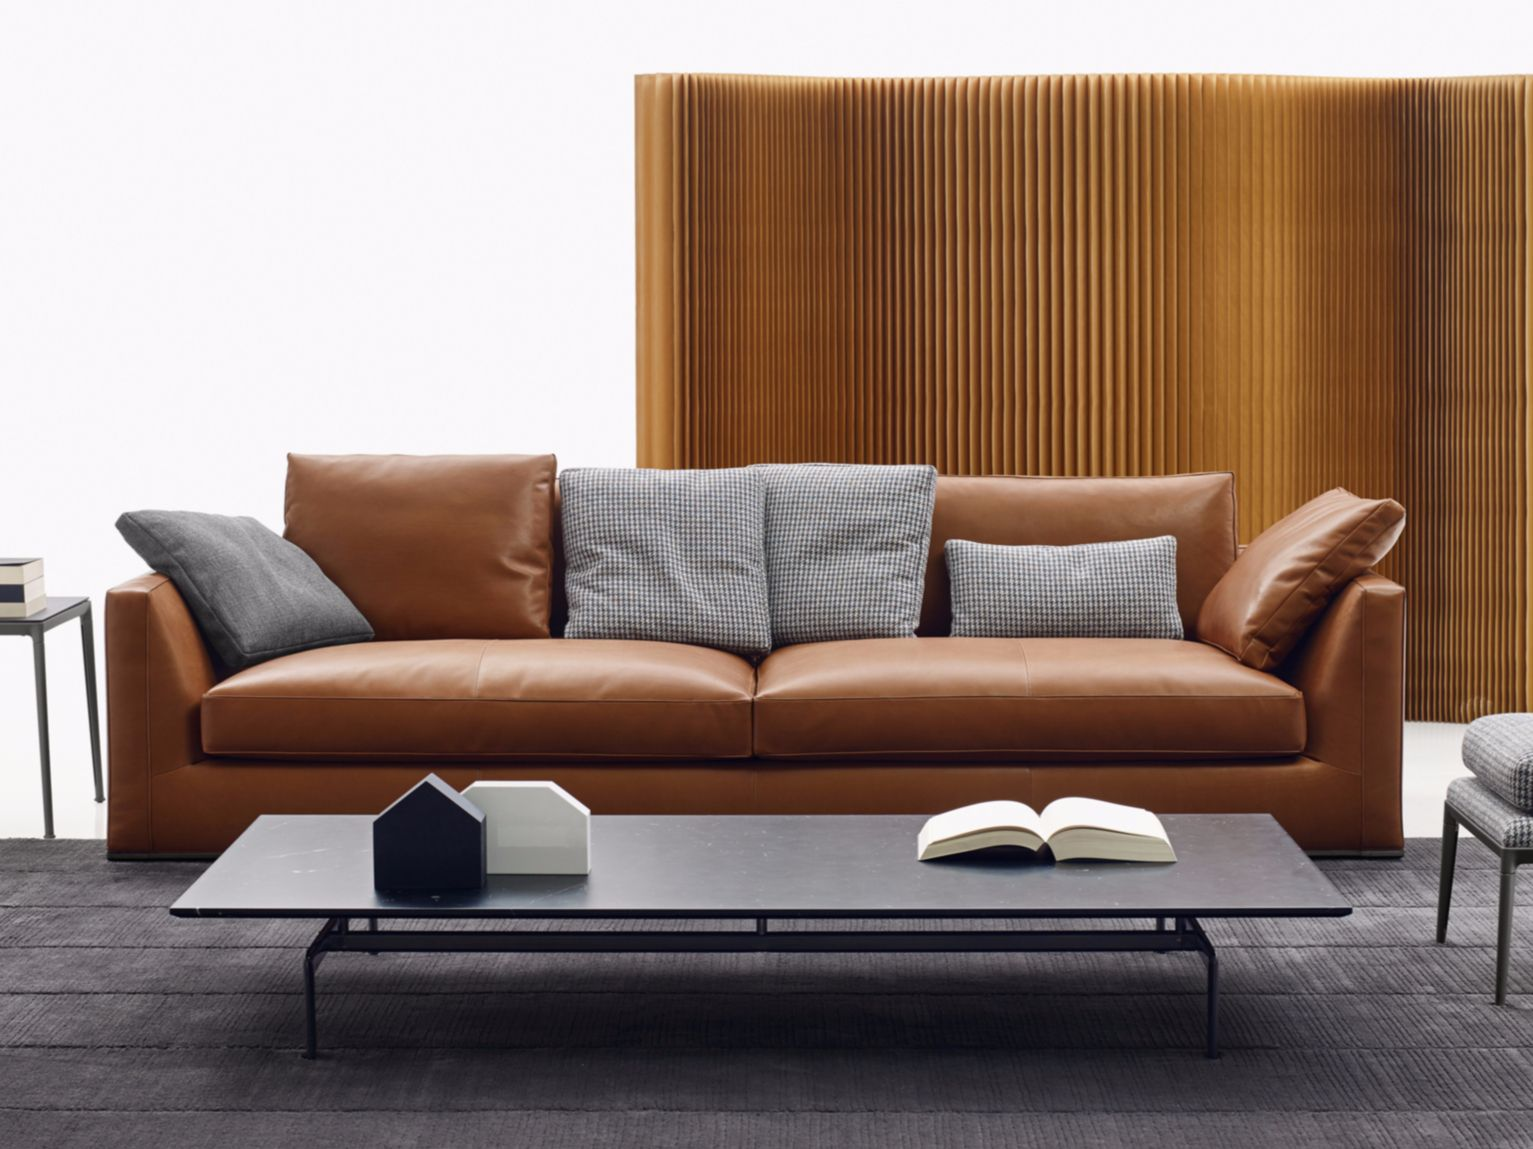 Divano Jean B&b 3 Seater Leather Sofa Richard Collection By B 家具 Sofa 3